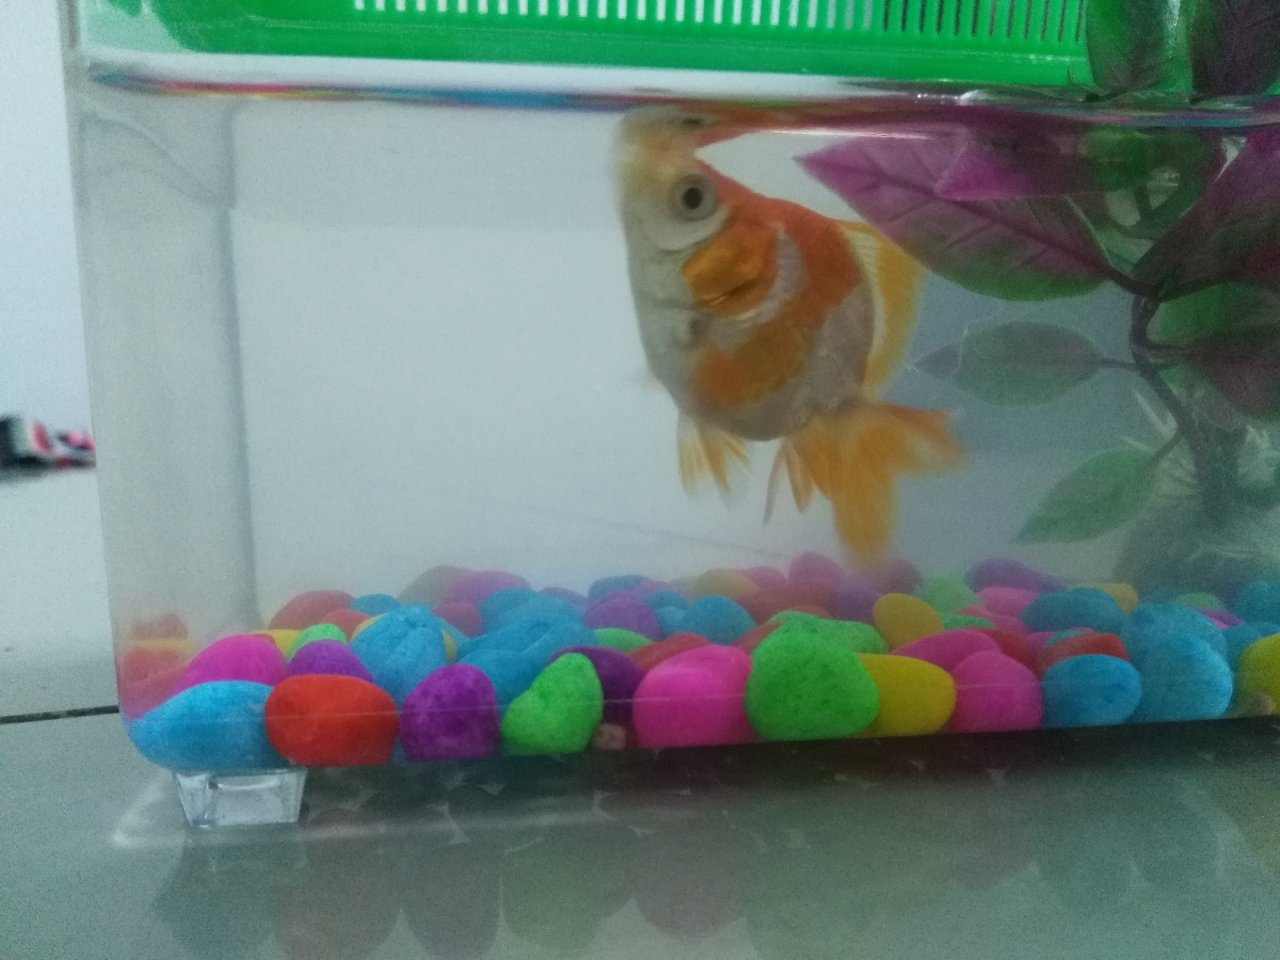 Fish in tank swimming at top - I Just Bought A Gold Fish 3 Days Ago And It Keeps Swimming On Top Of The Tank What Should I Do Im Worry